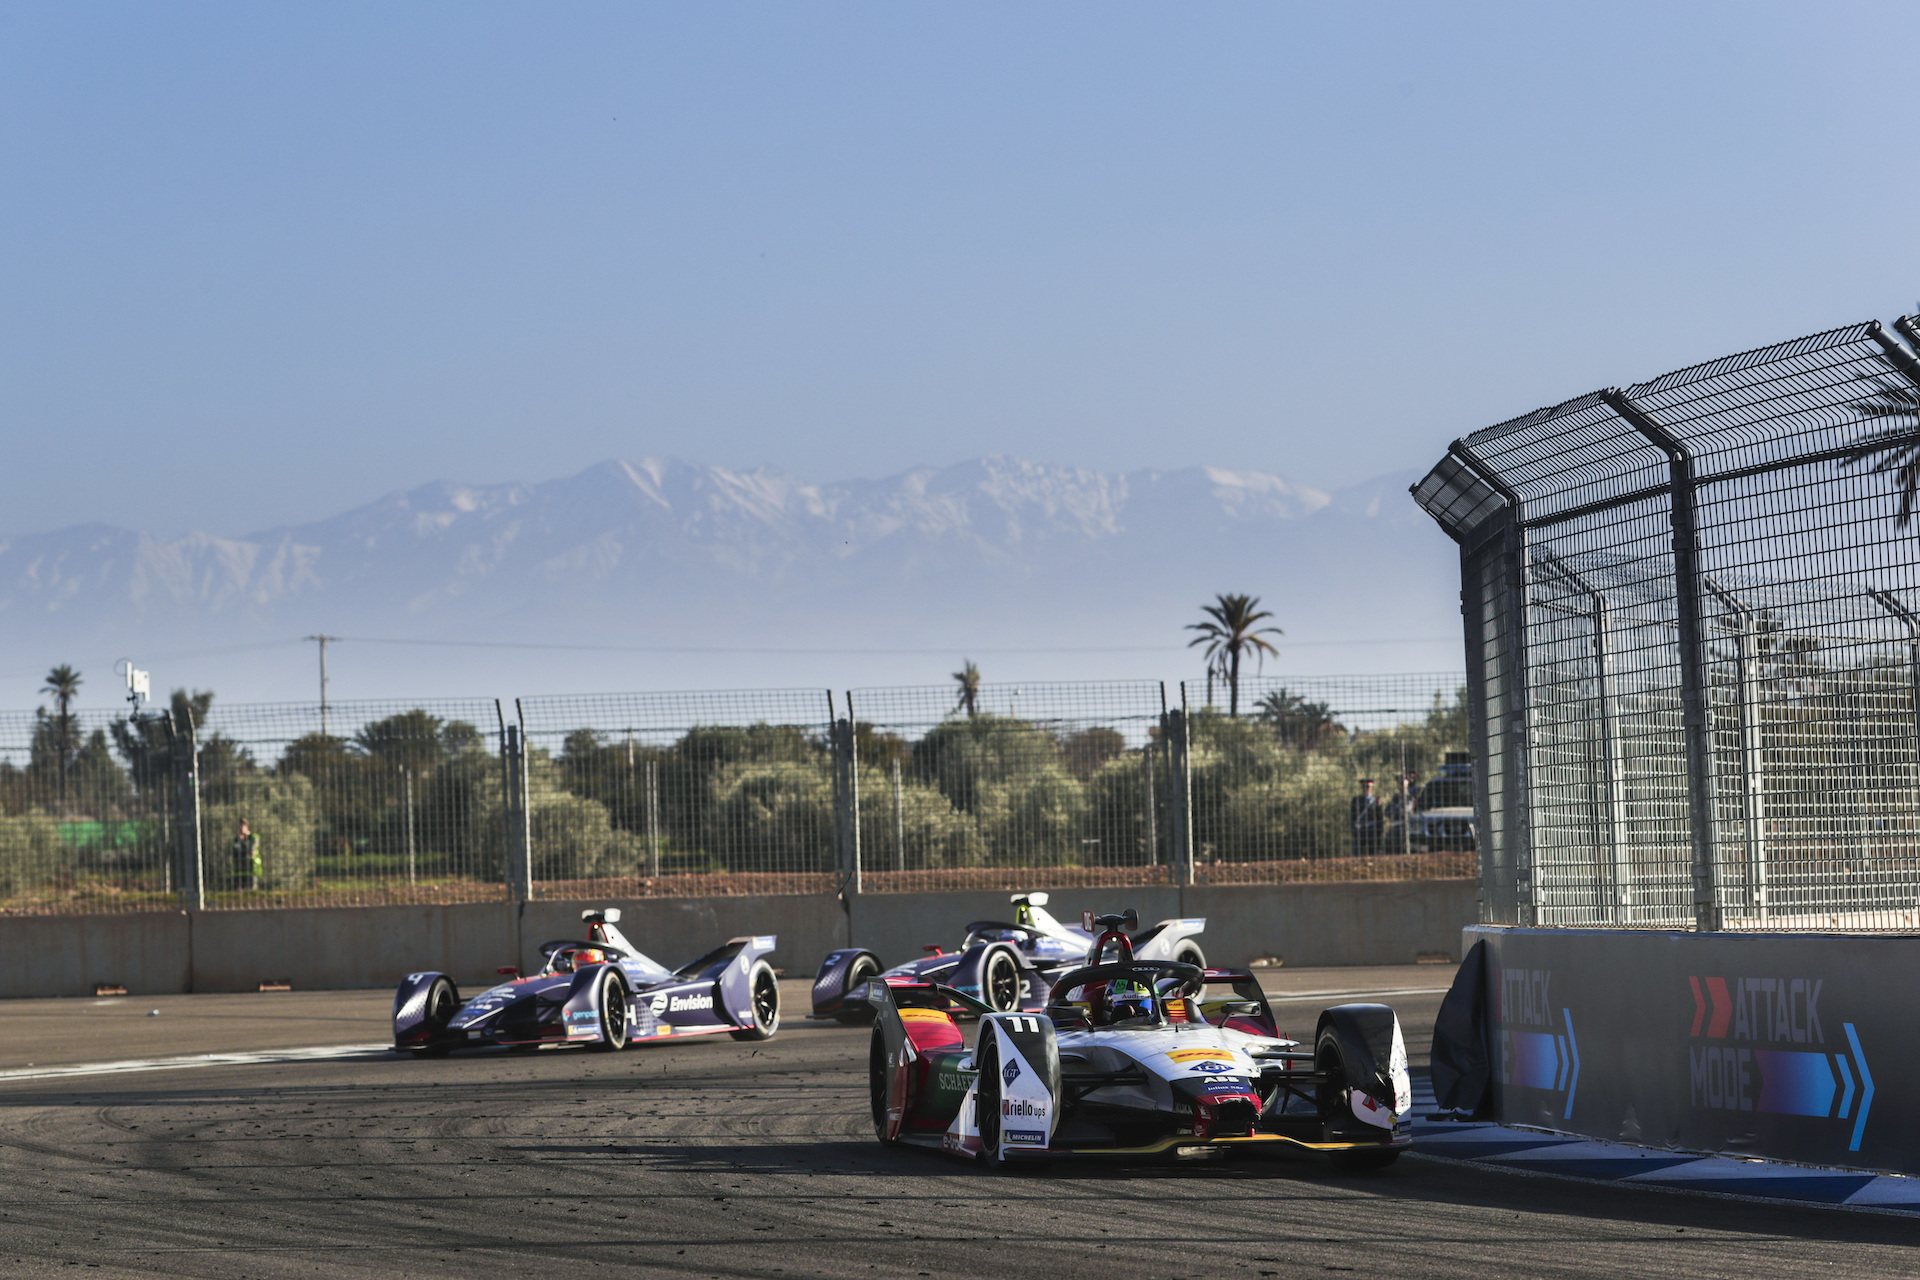 formula e cars racing in marrakesh